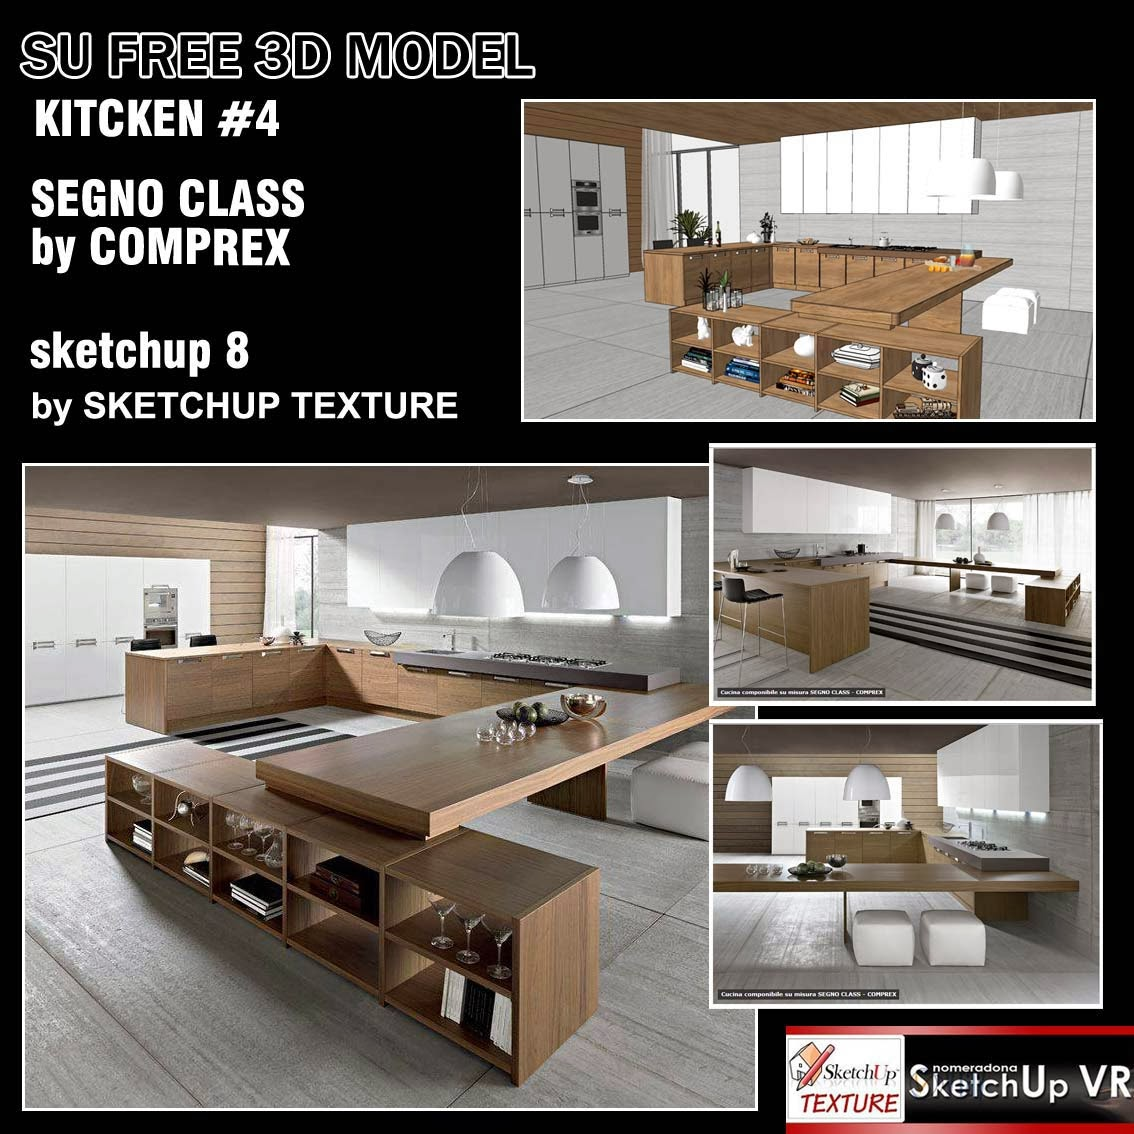 SKETCHUP TEXTURE FREE 3D MODEL KITCHEN DESIGN